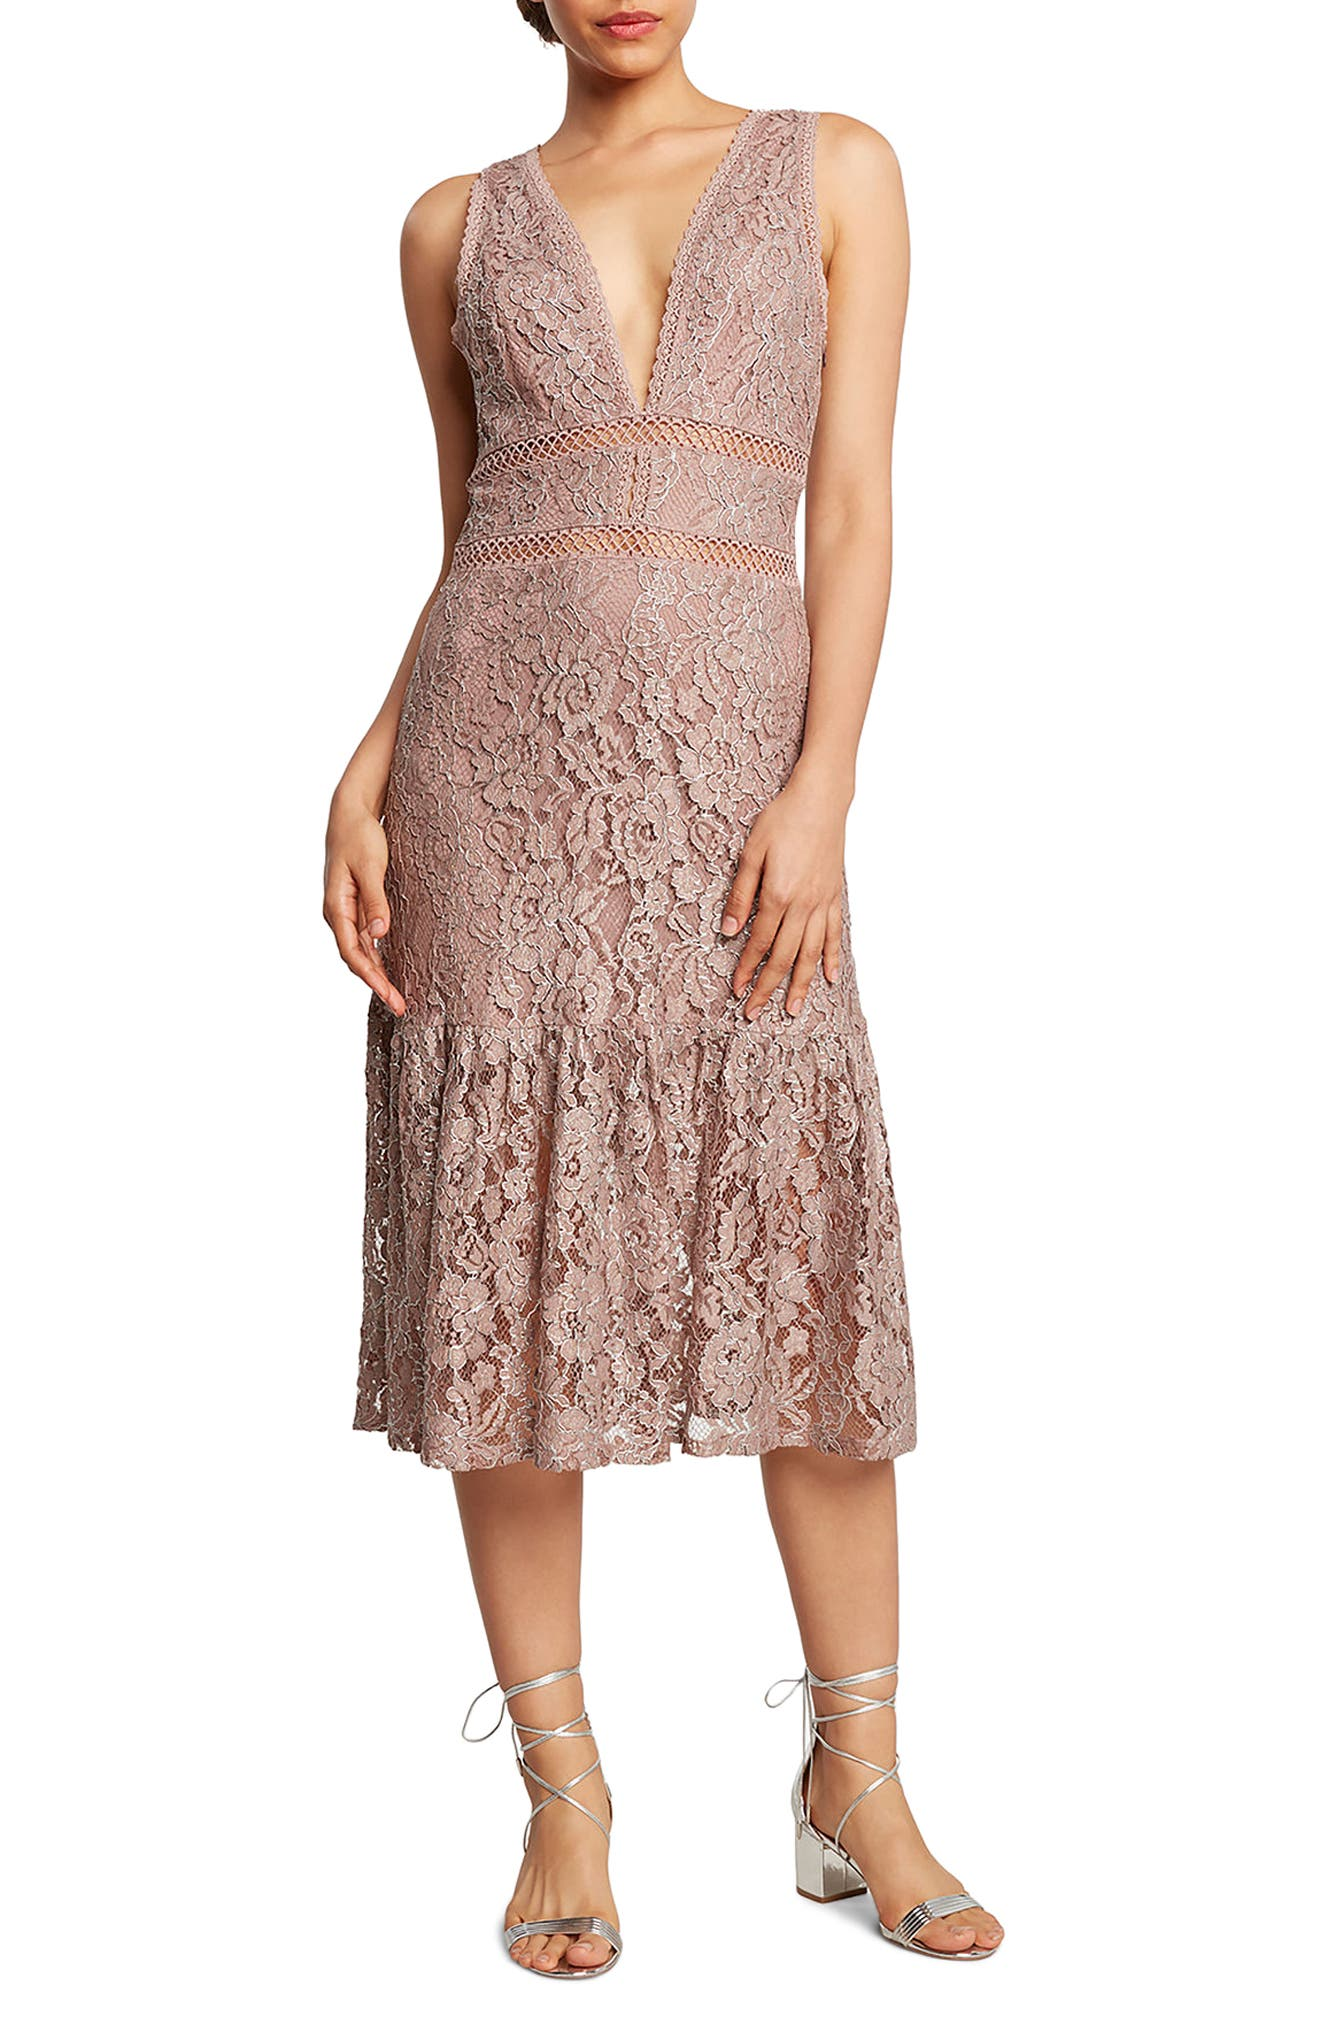 WILLOW & CLAY,                             Lace Foil Midi Dress,                             Main thumbnail 1, color,                             530